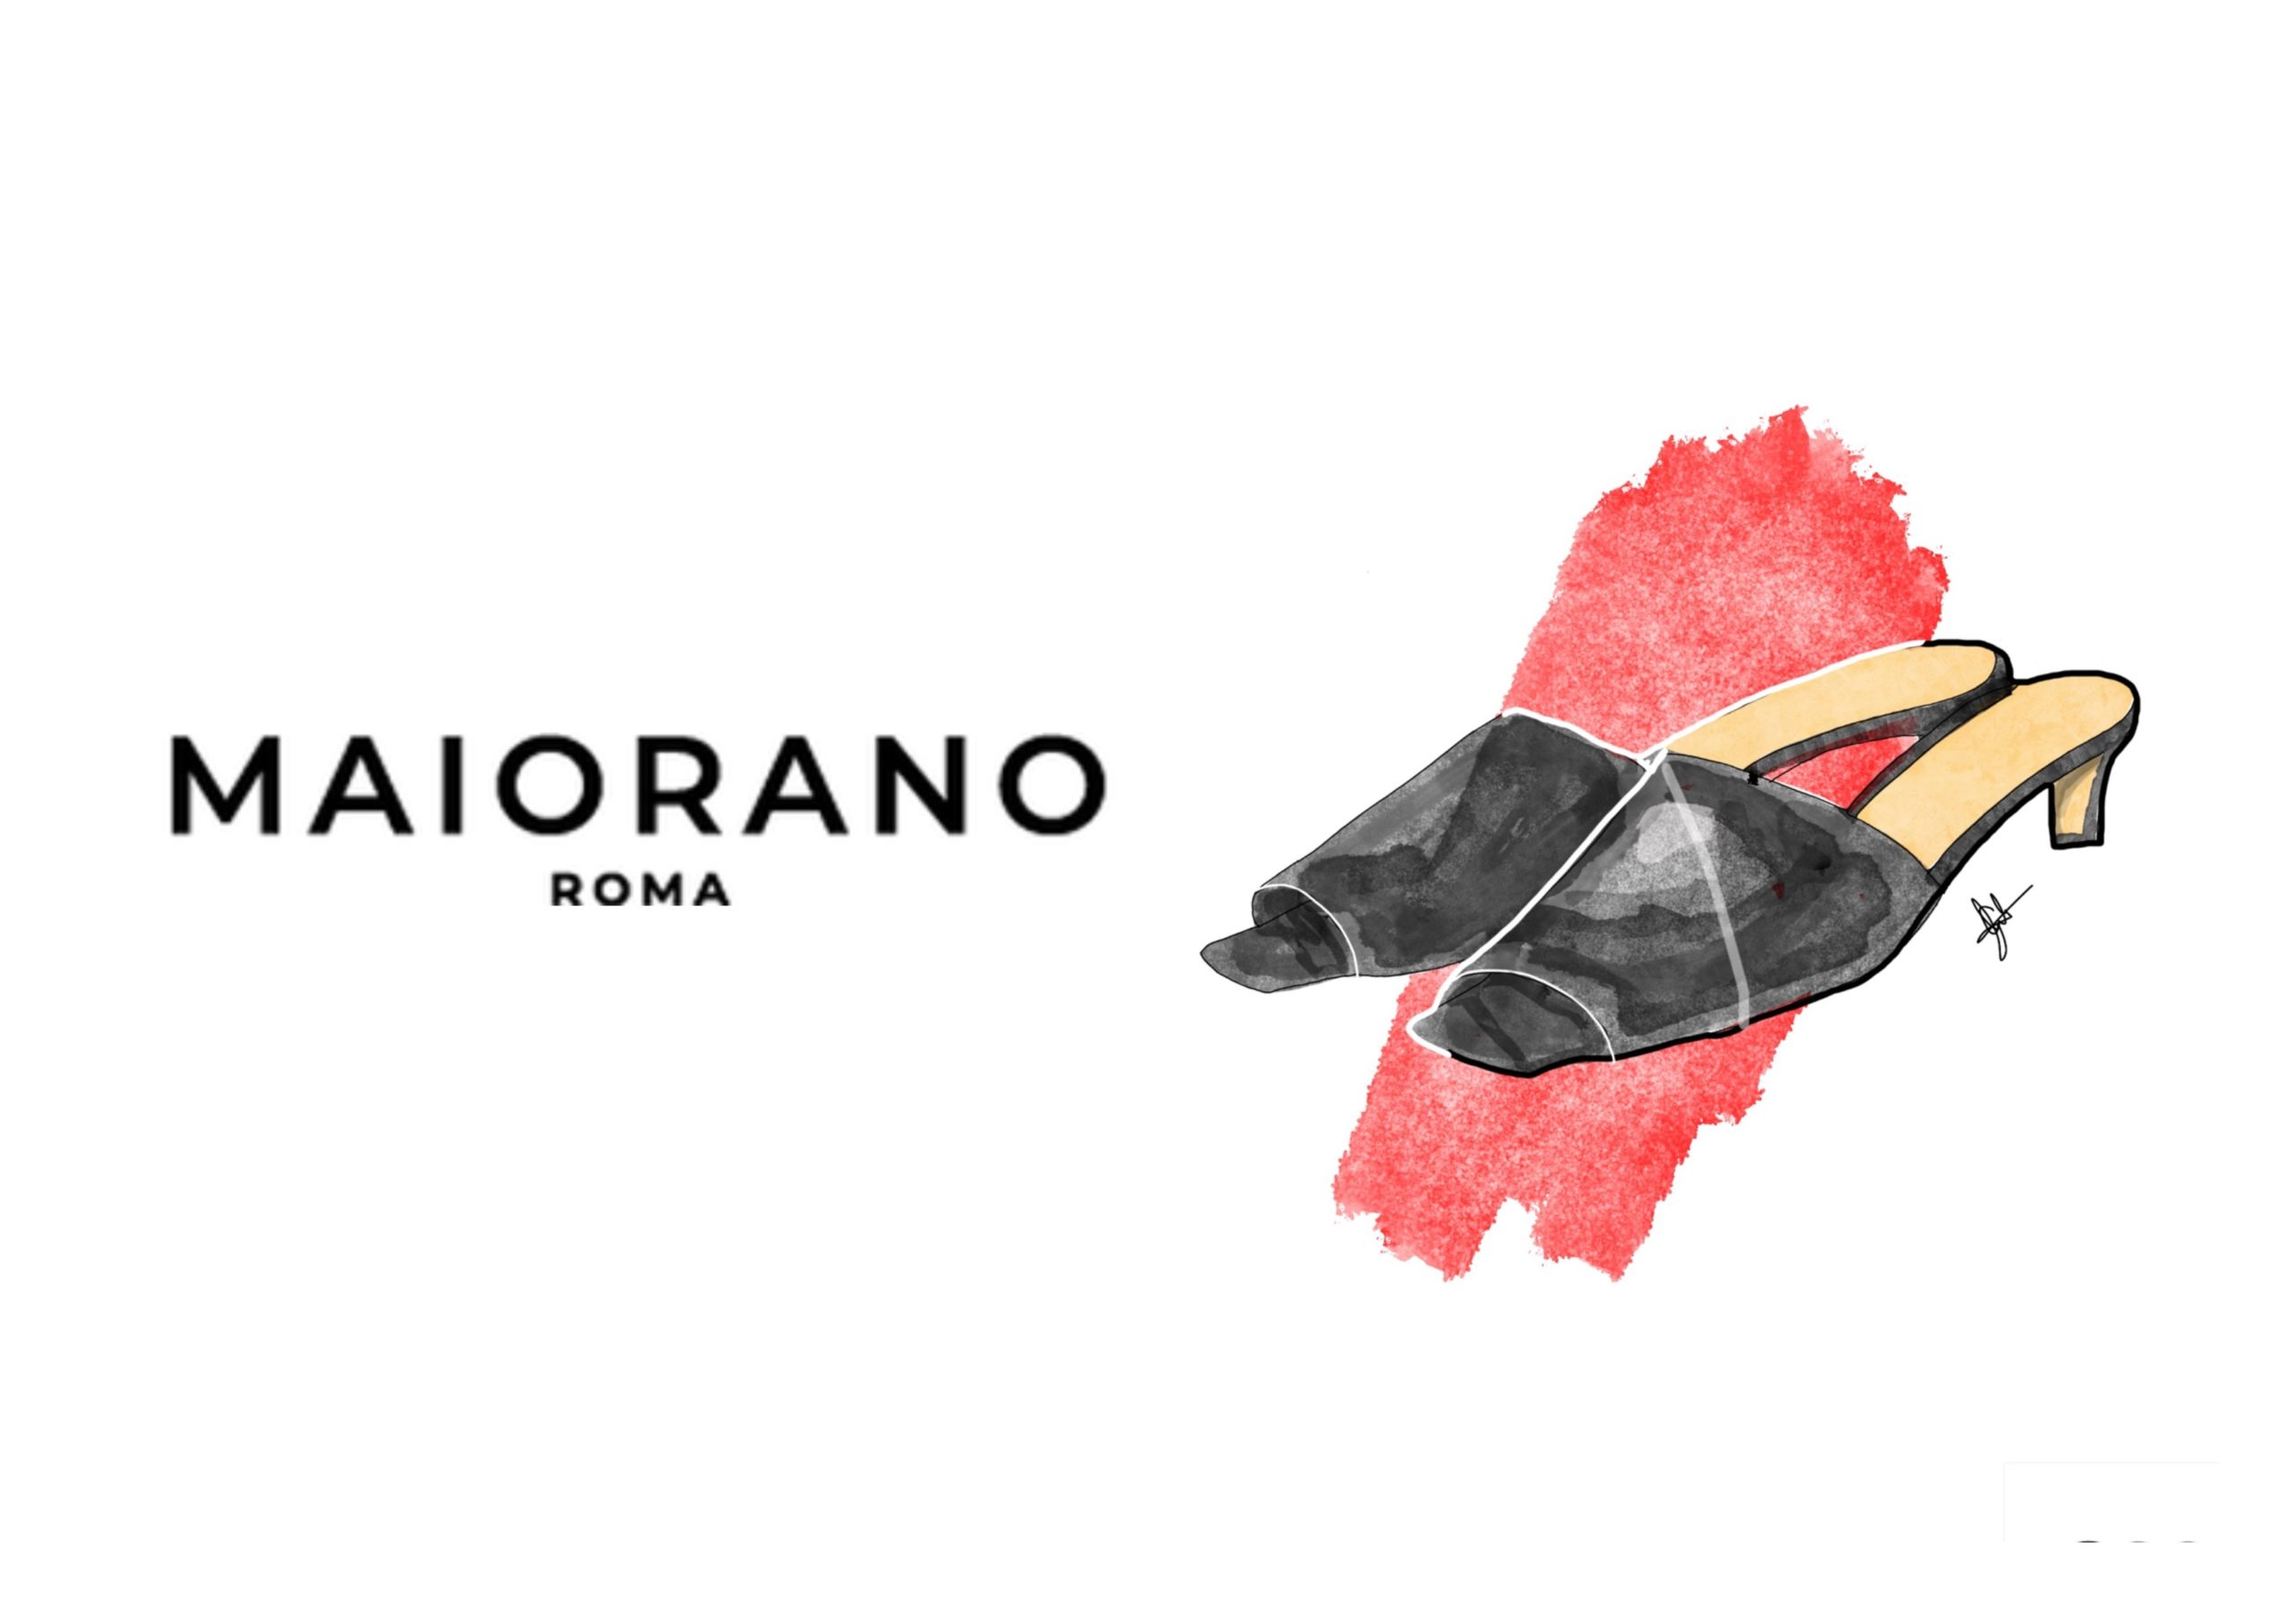 MAIORANO Luxury Shoes Fashion Illustration by Gabriele Melodia